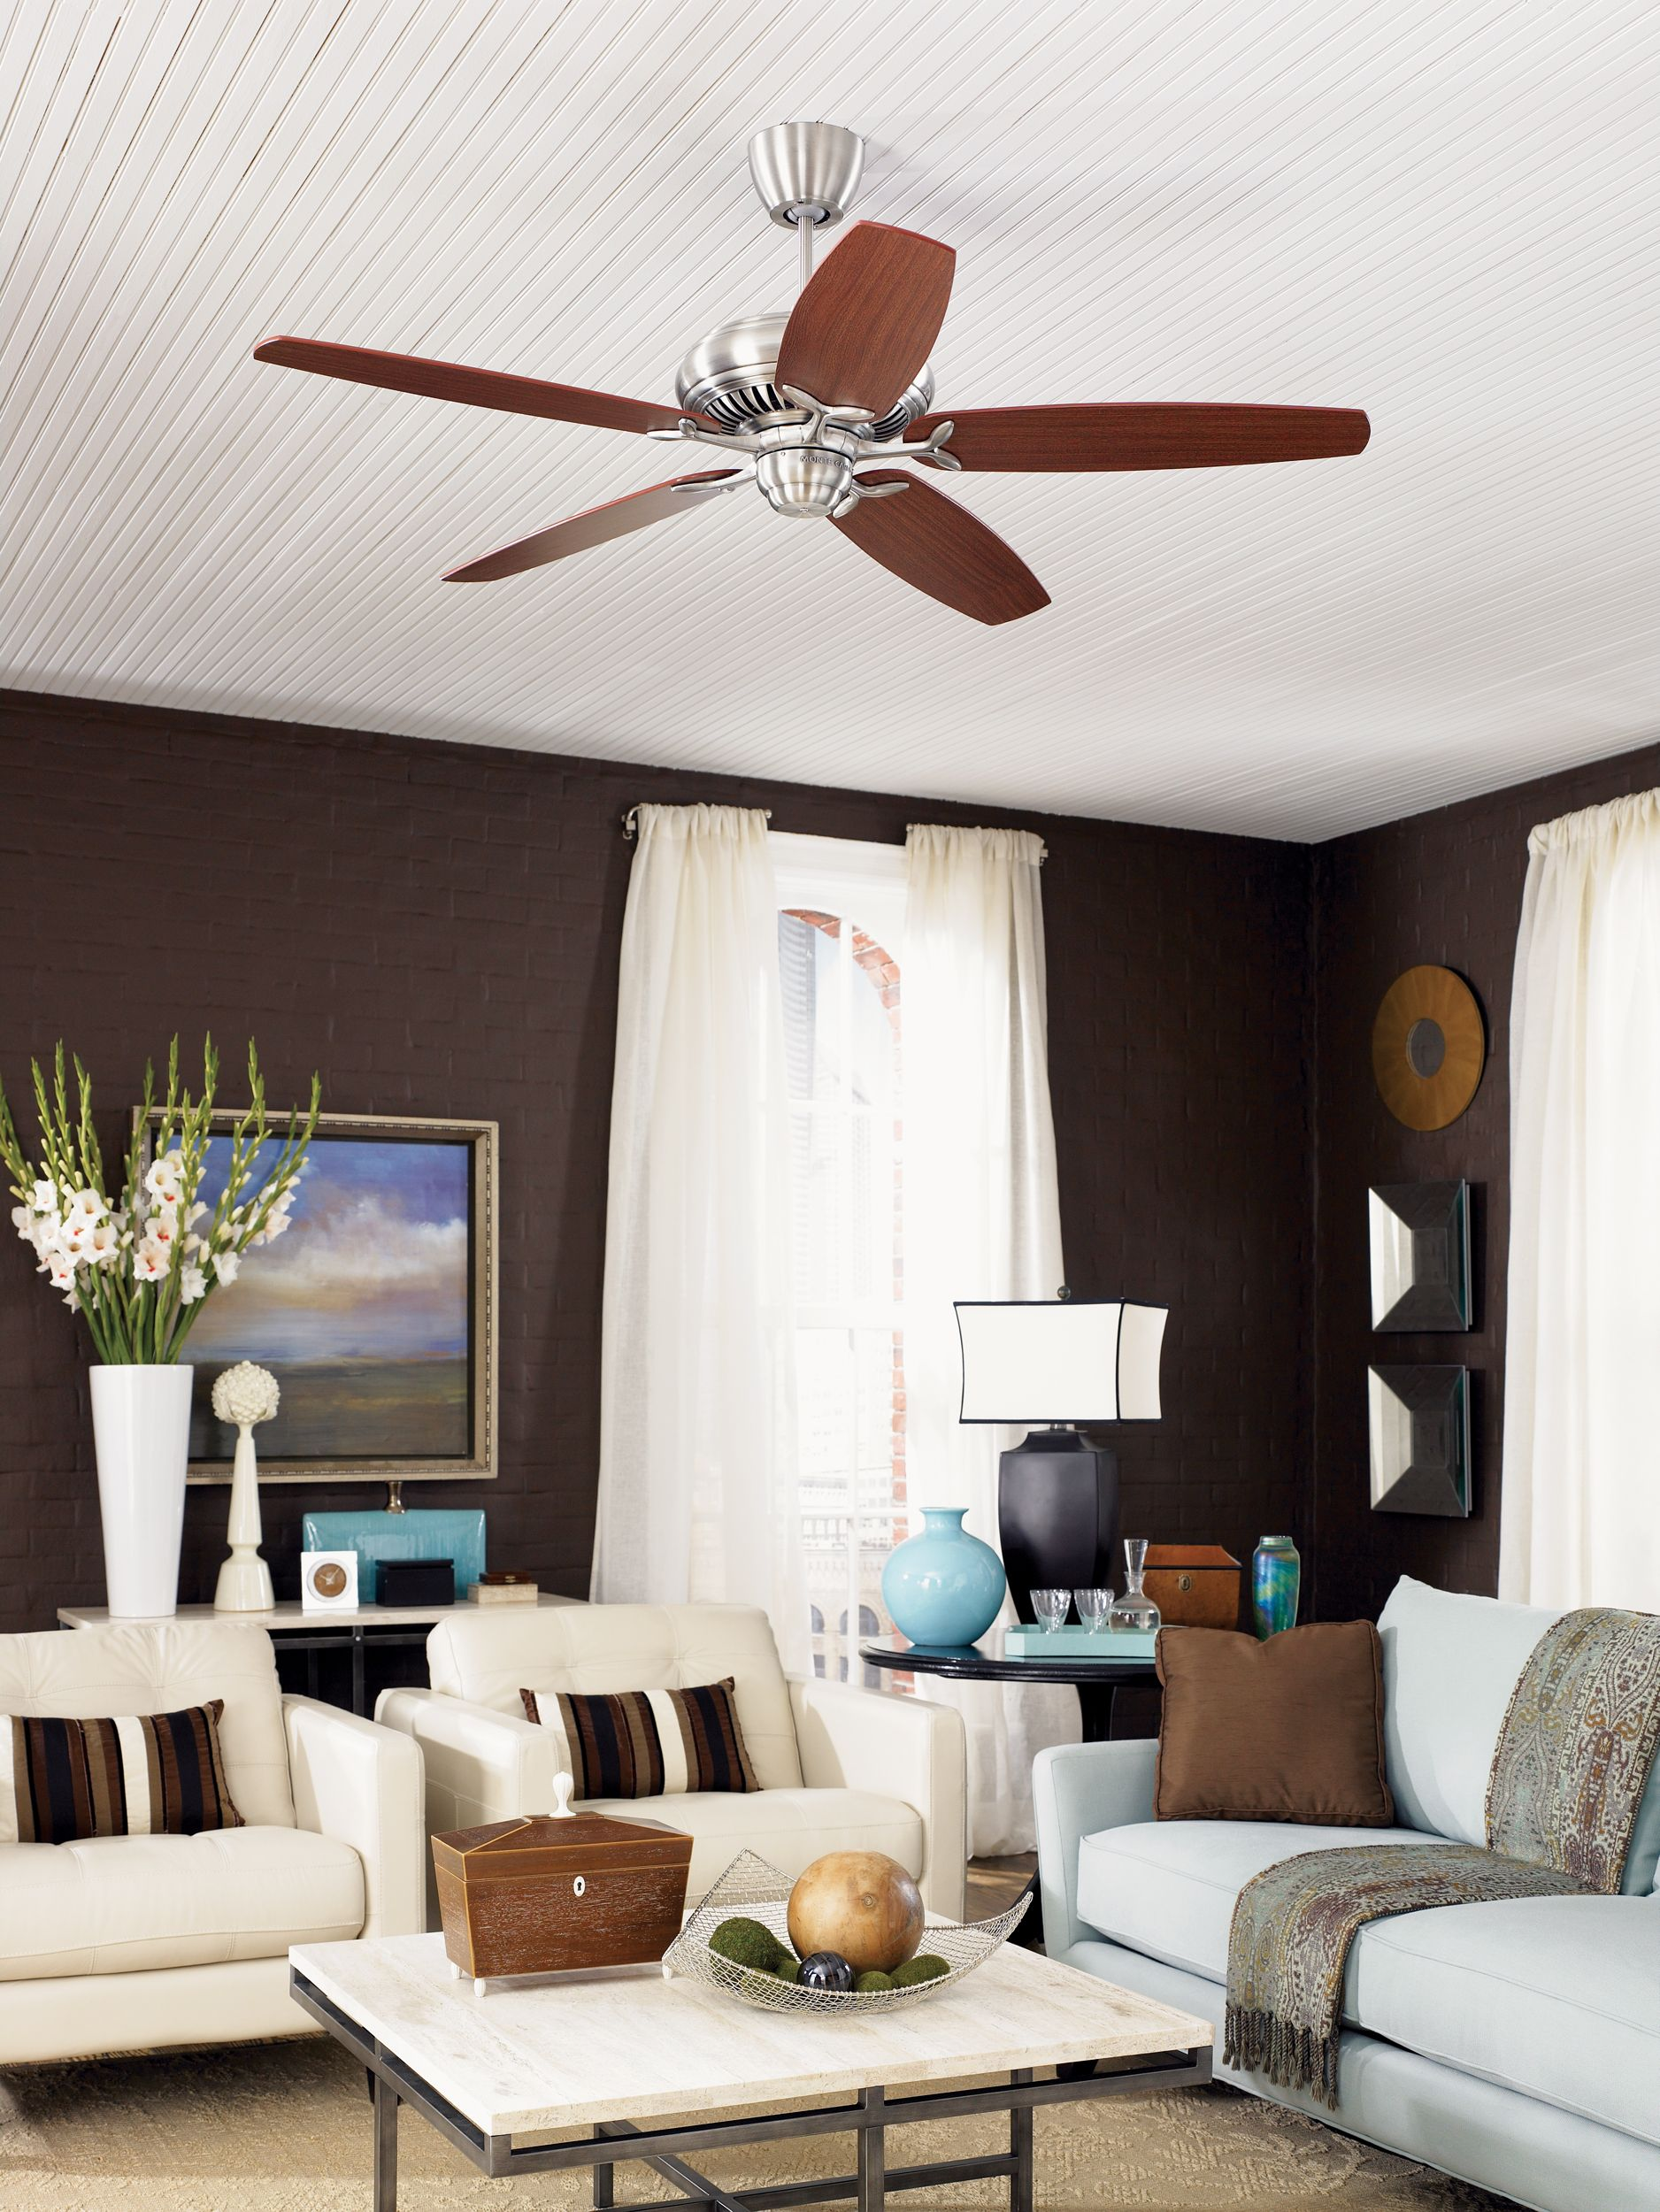 living trey with room livings fan rd ceiling large judge logue